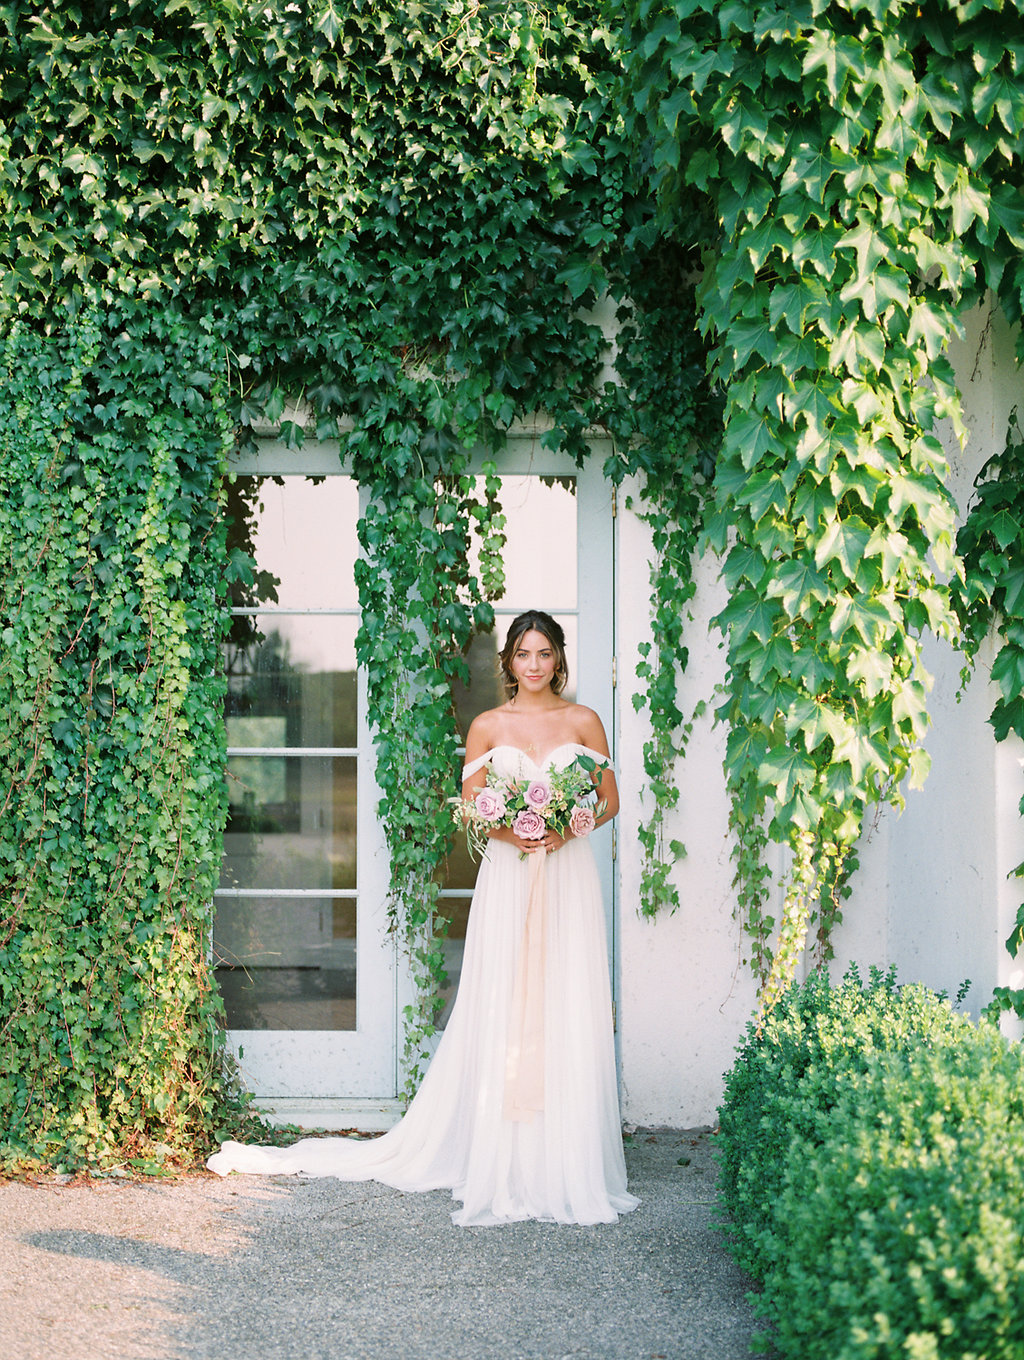 LuxProvenceWeddingInspired-SavanMentorshipbyJonandMochPhotography(43of75).jpg